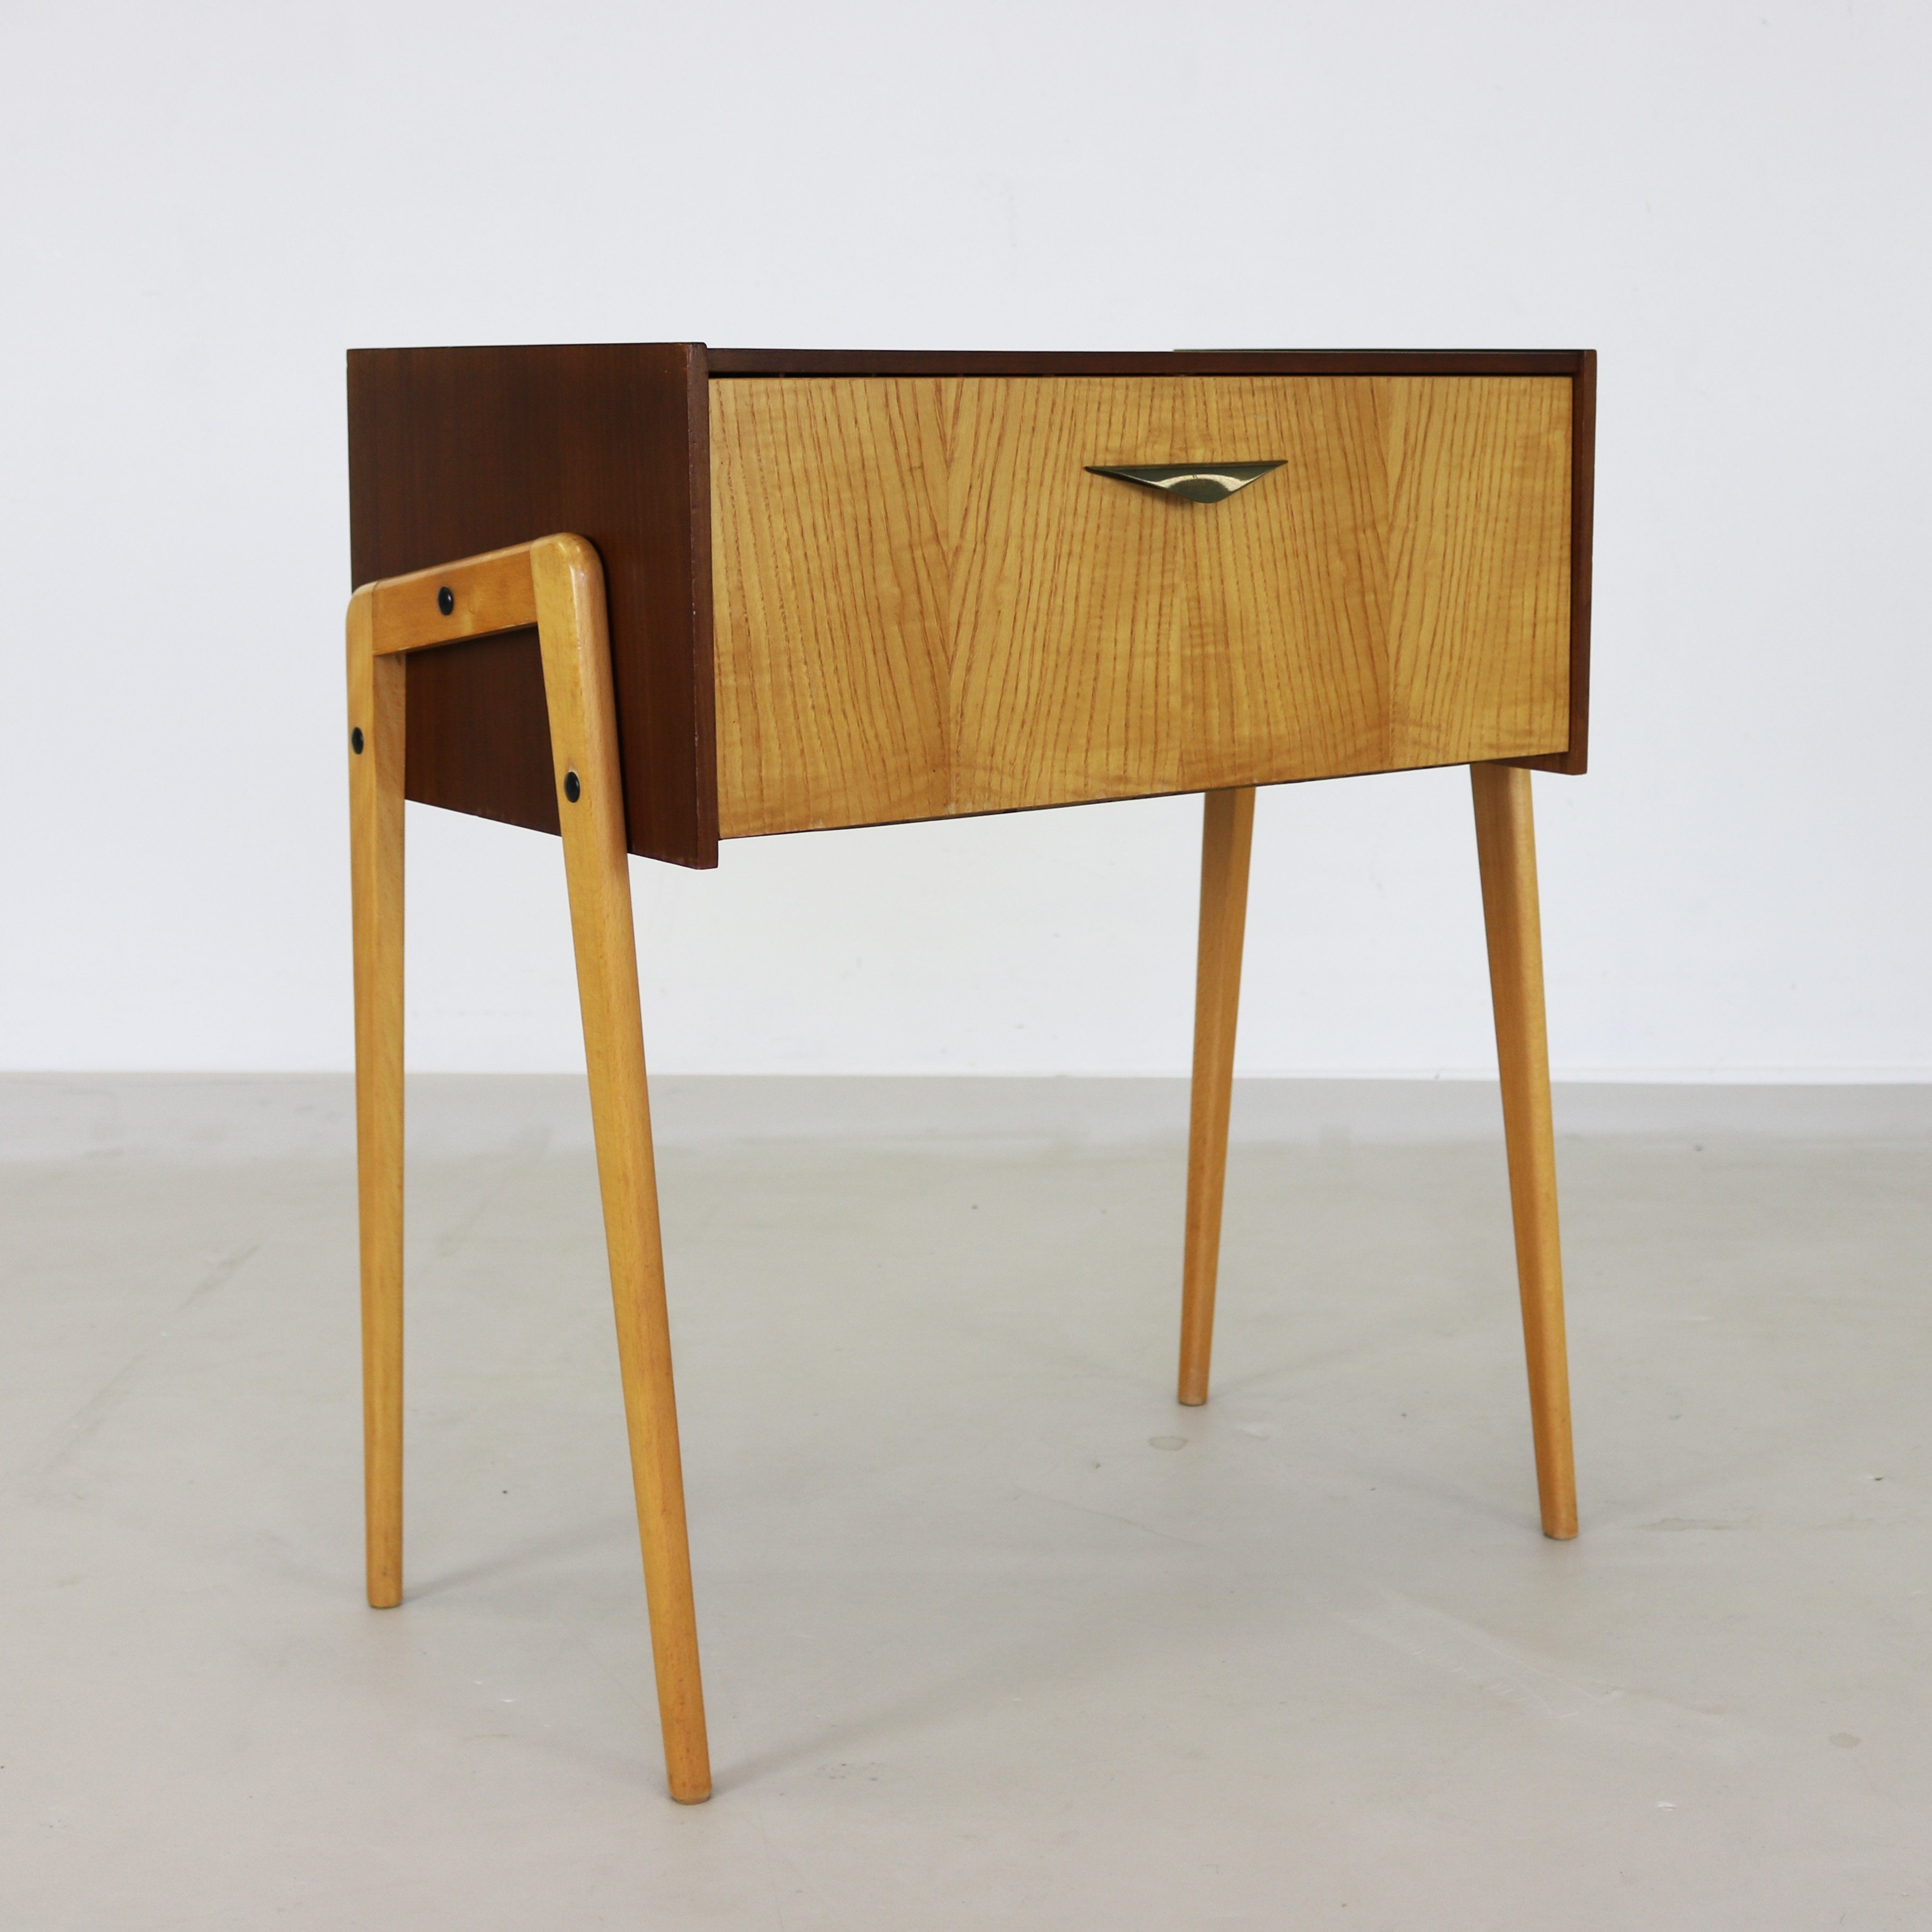 Record Cabinet In Two Tone Wood, 1960s